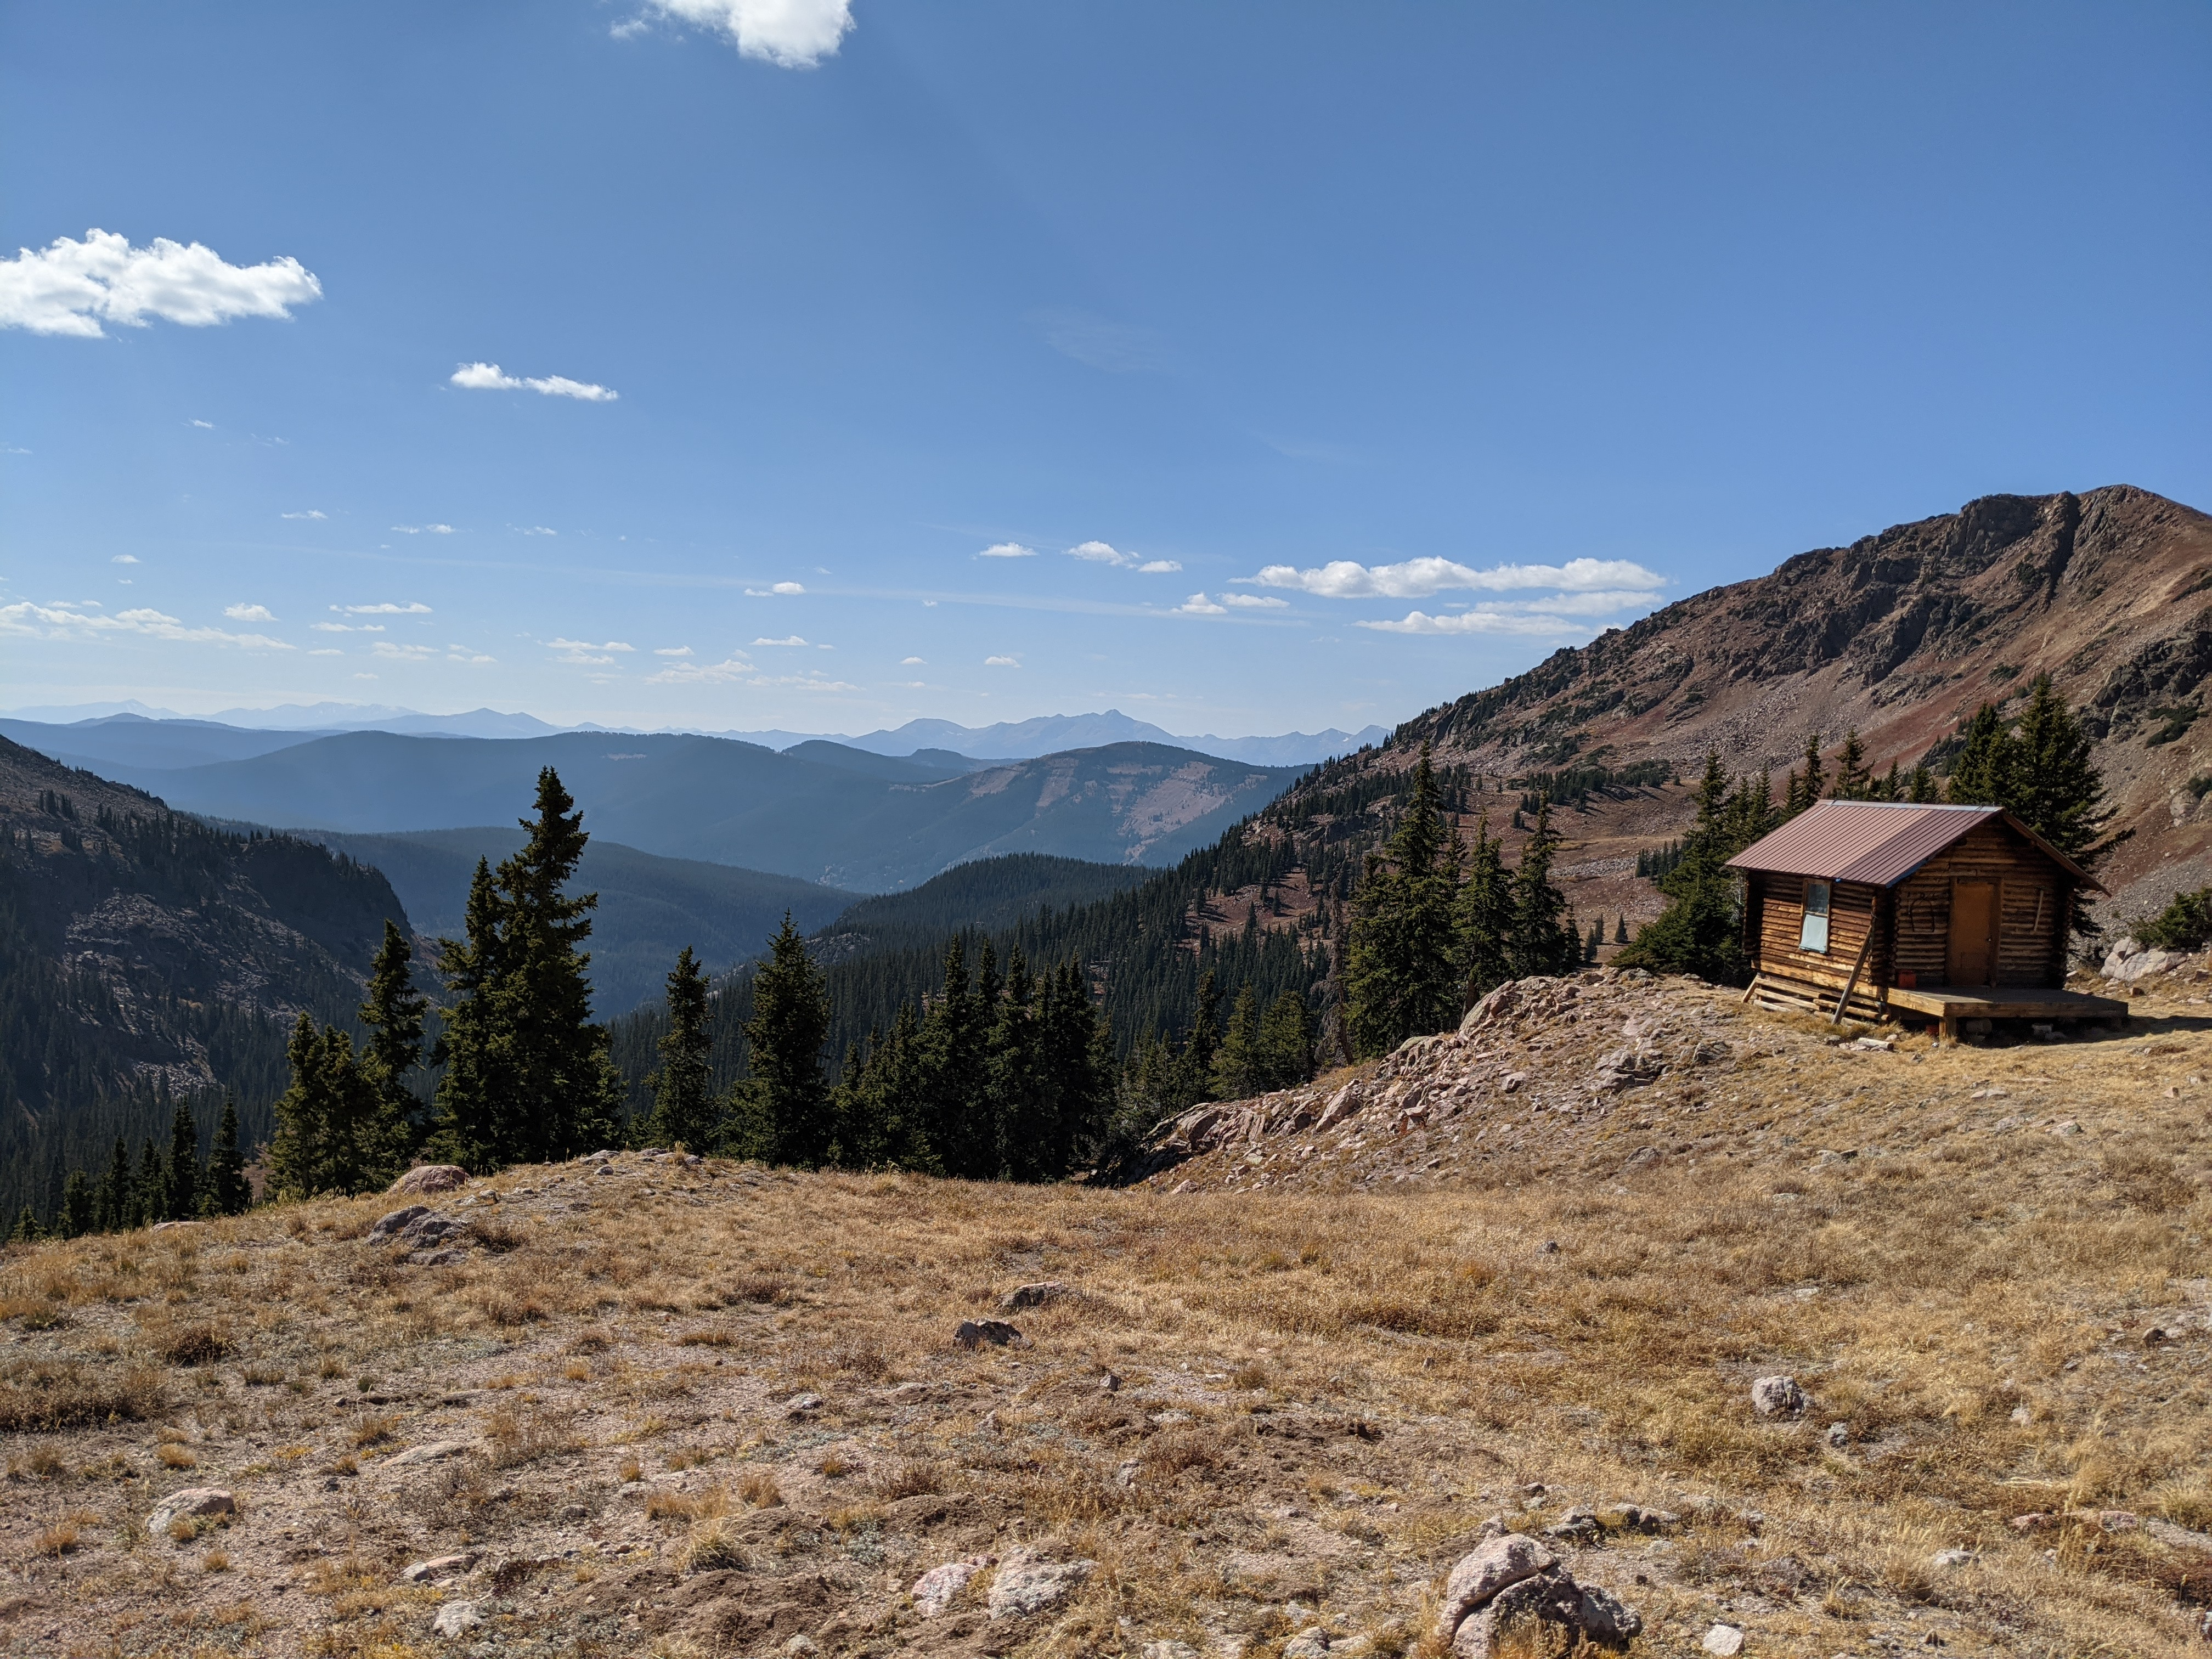 A cabin from what is likely an inholding inside of Eagles Nest Wilderness